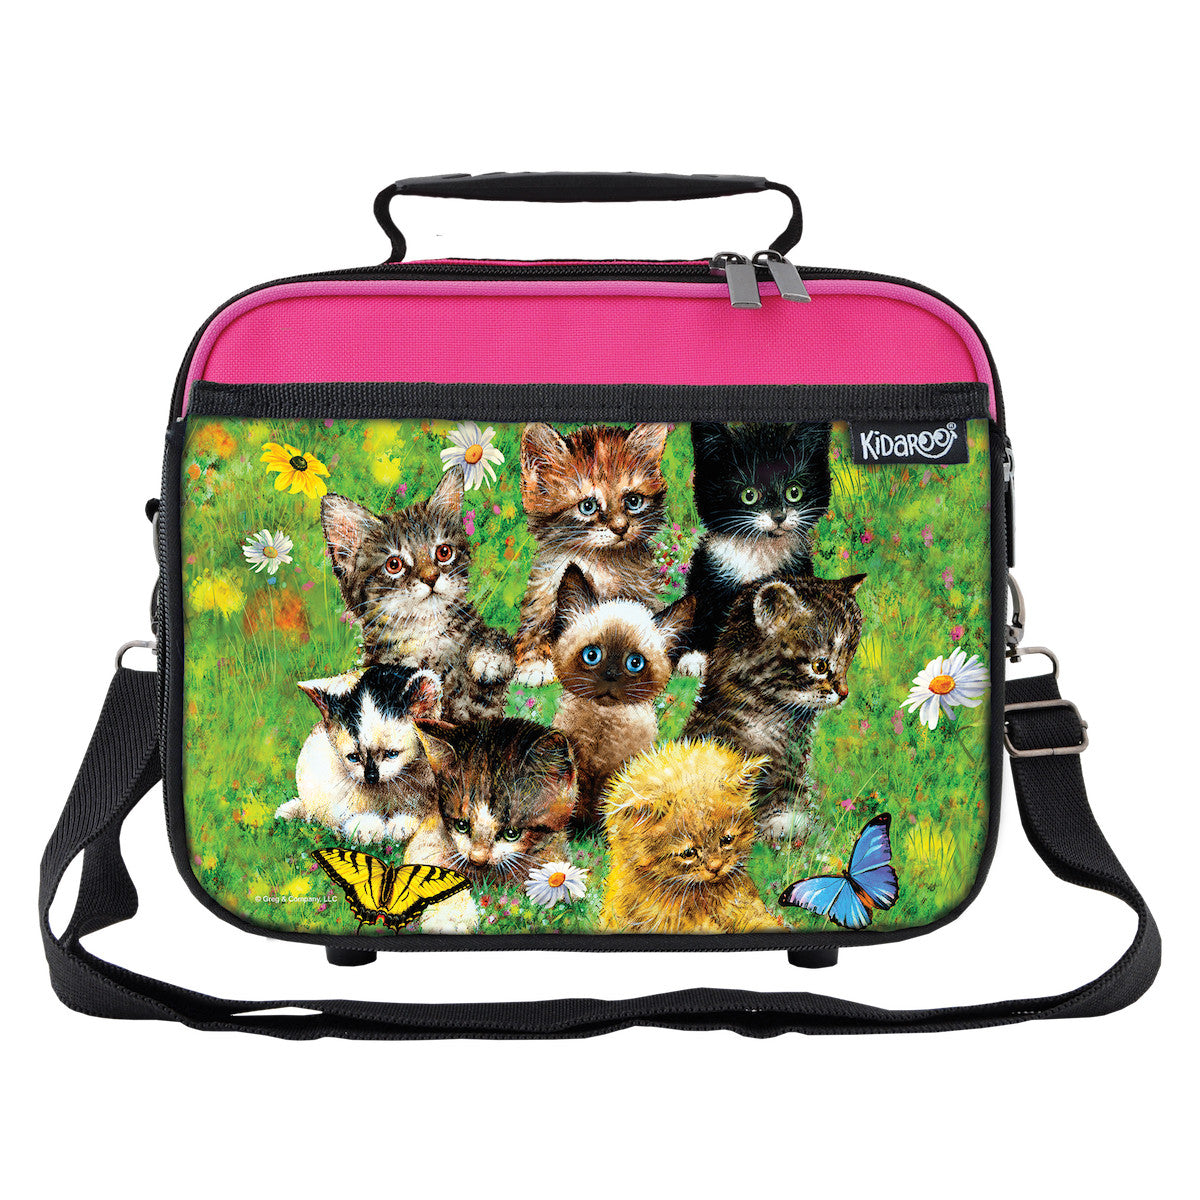 Cute Little Kittens School Lunchbox, Tote Bag for Boys, Girls, Kids